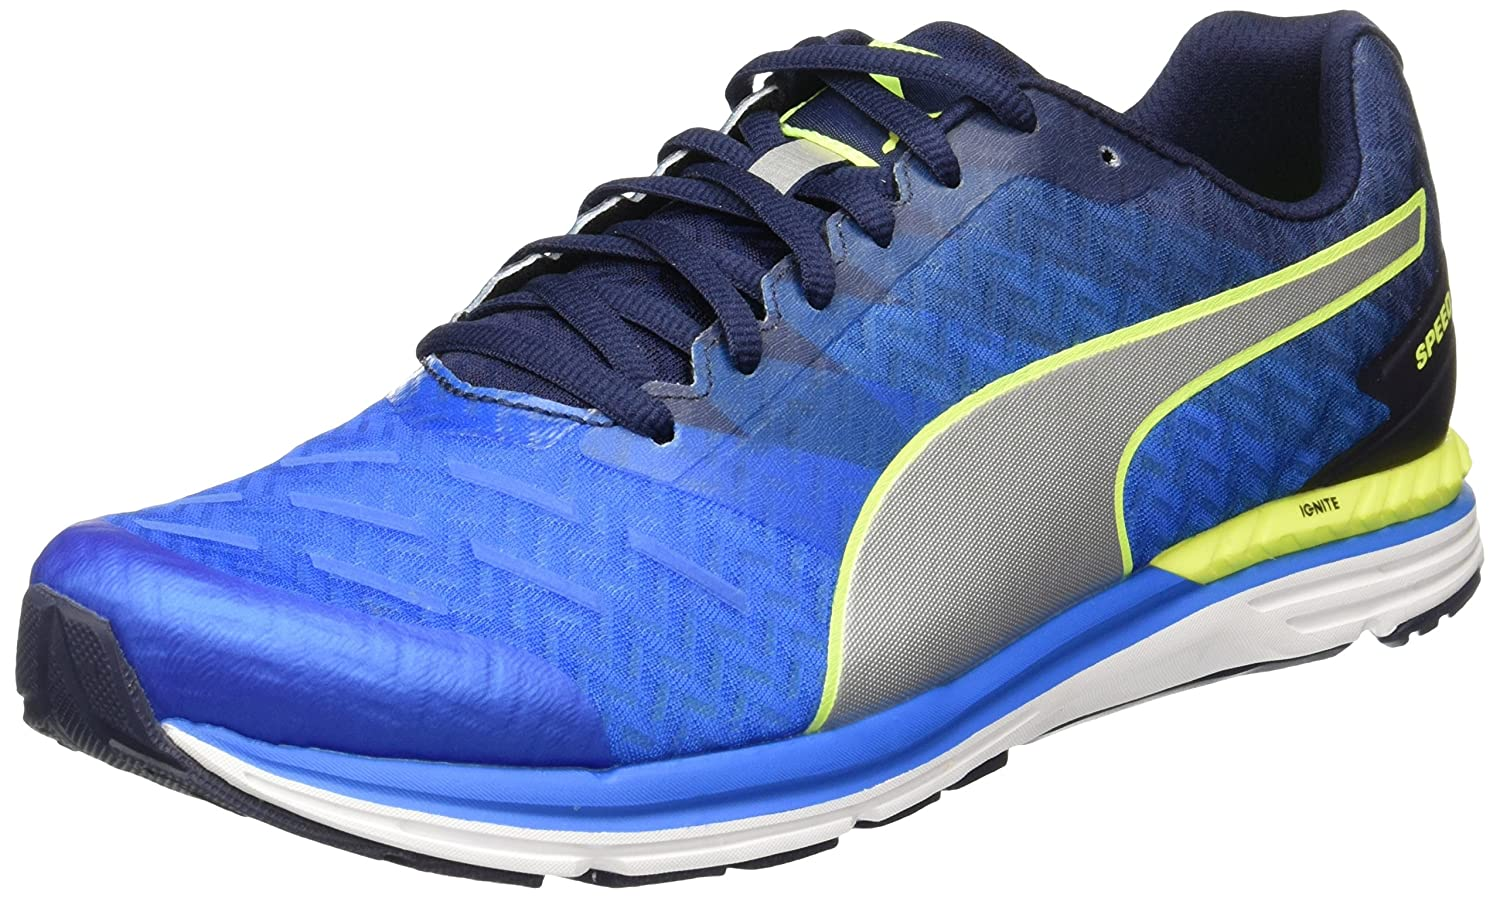 84c0c8bf9d6 Puma Men s Speed 300 Ignite Running Shoes  Buy Online at Low Prices in  India - Amazon.in